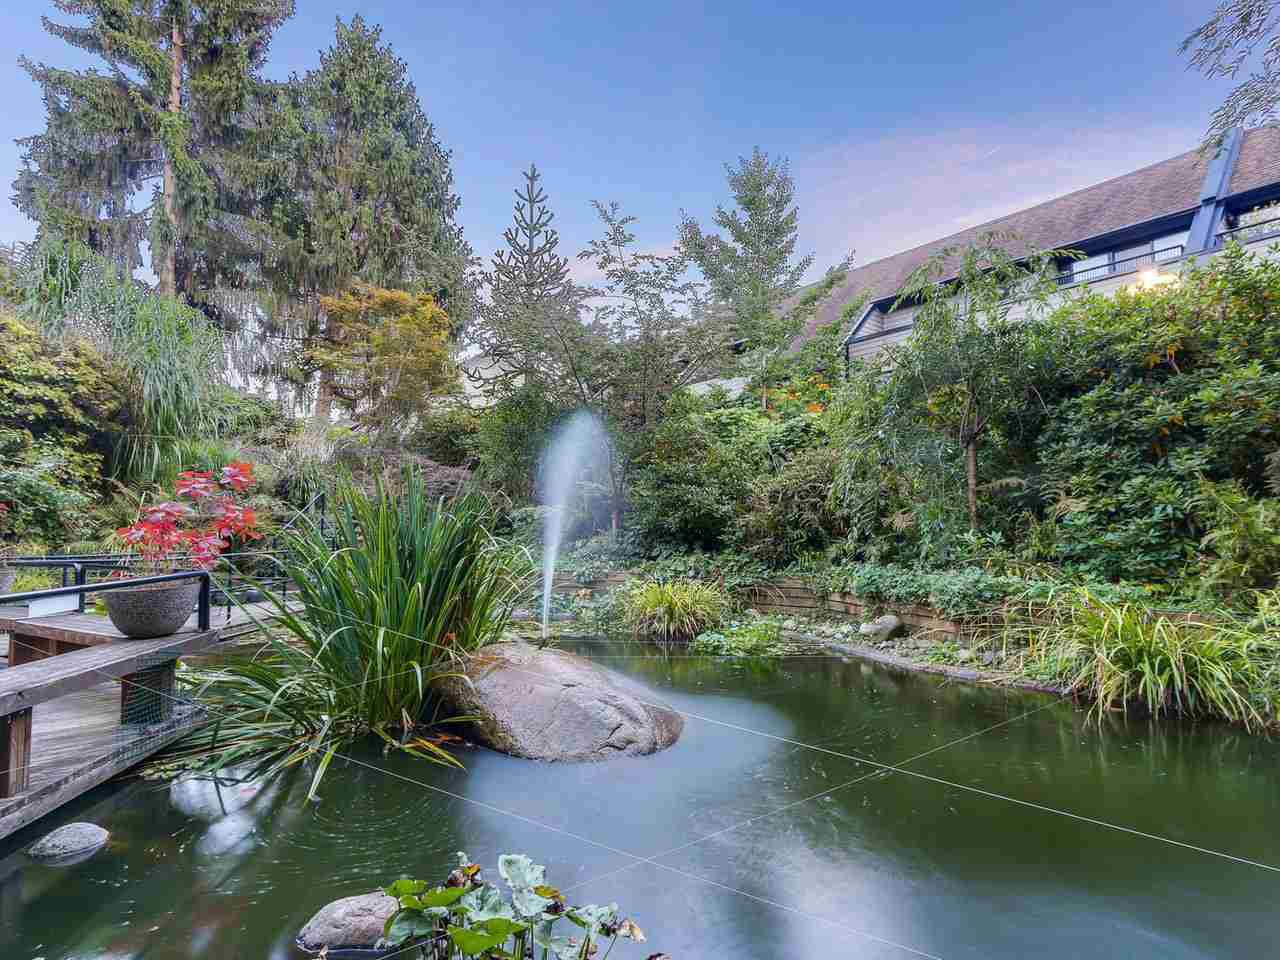 """Main Photo: 315 7055 WILMA Street in Burnaby: Highgate Condo for sale in """"THE BERESFORD"""" (Burnaby South)  : MLS®# R2364861"""